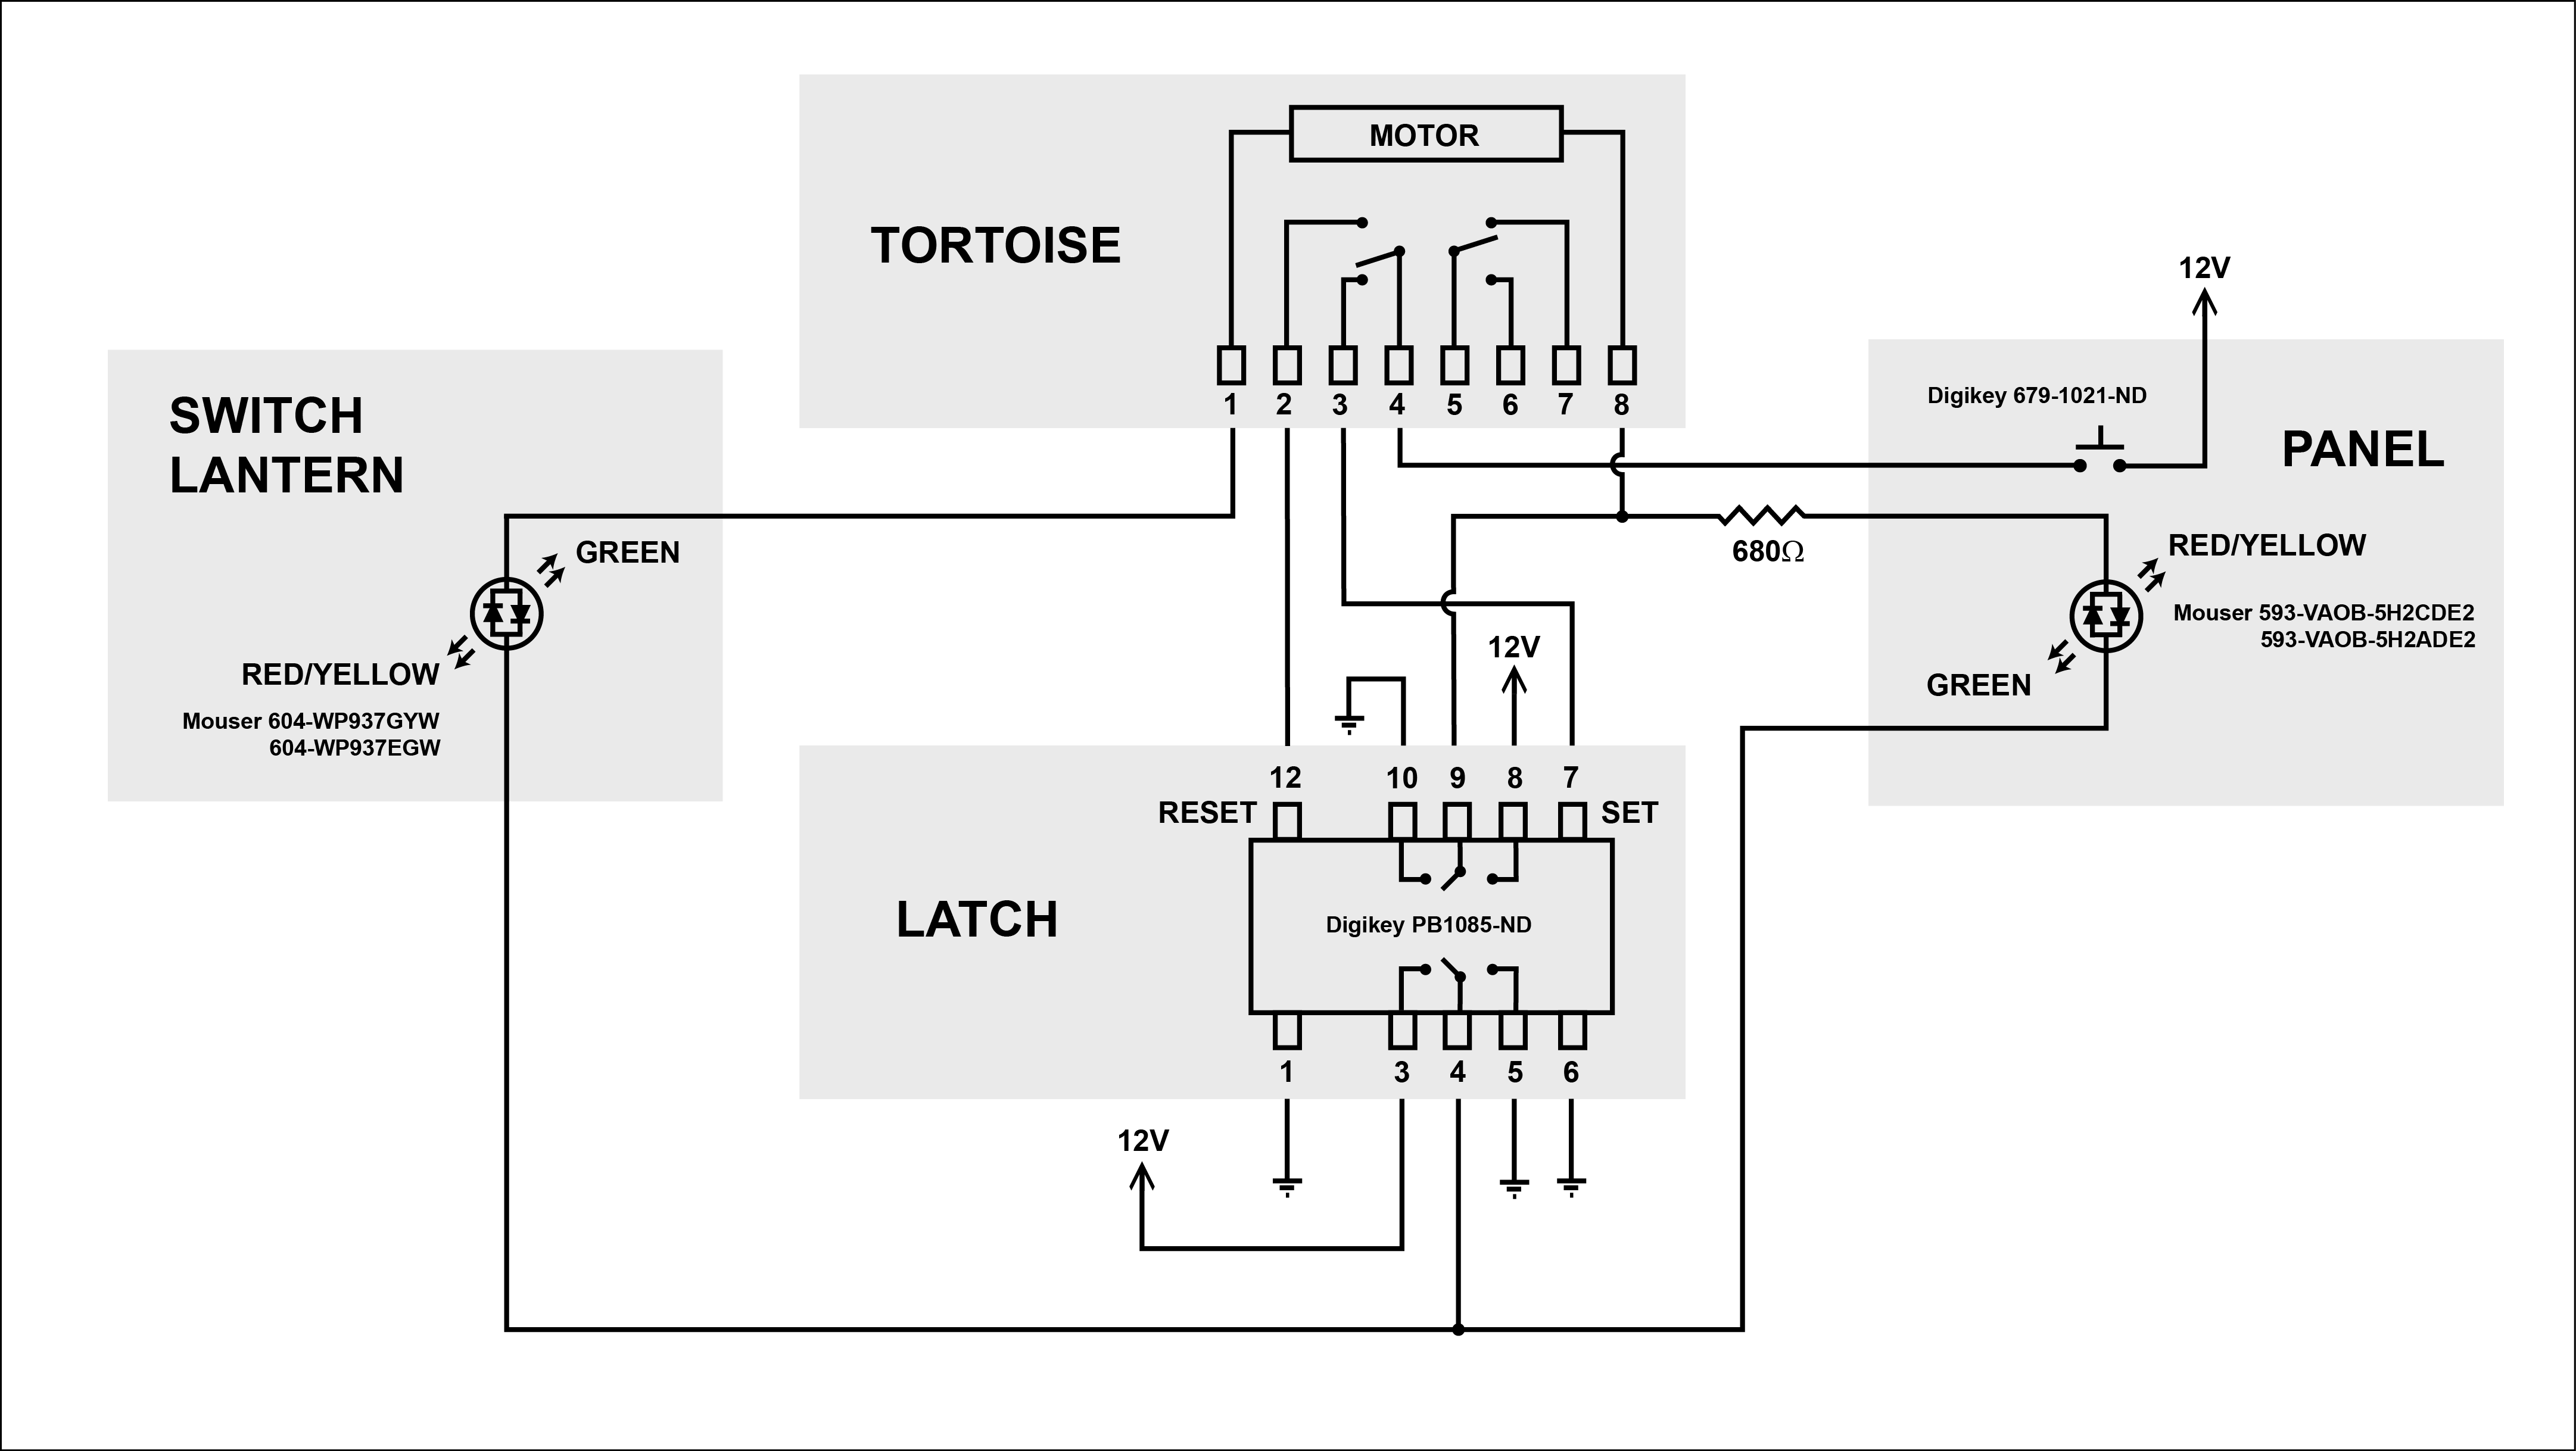 Tortoise Wiring Diagram For Controls Auto Electrical Switch Machines With Led Get Free